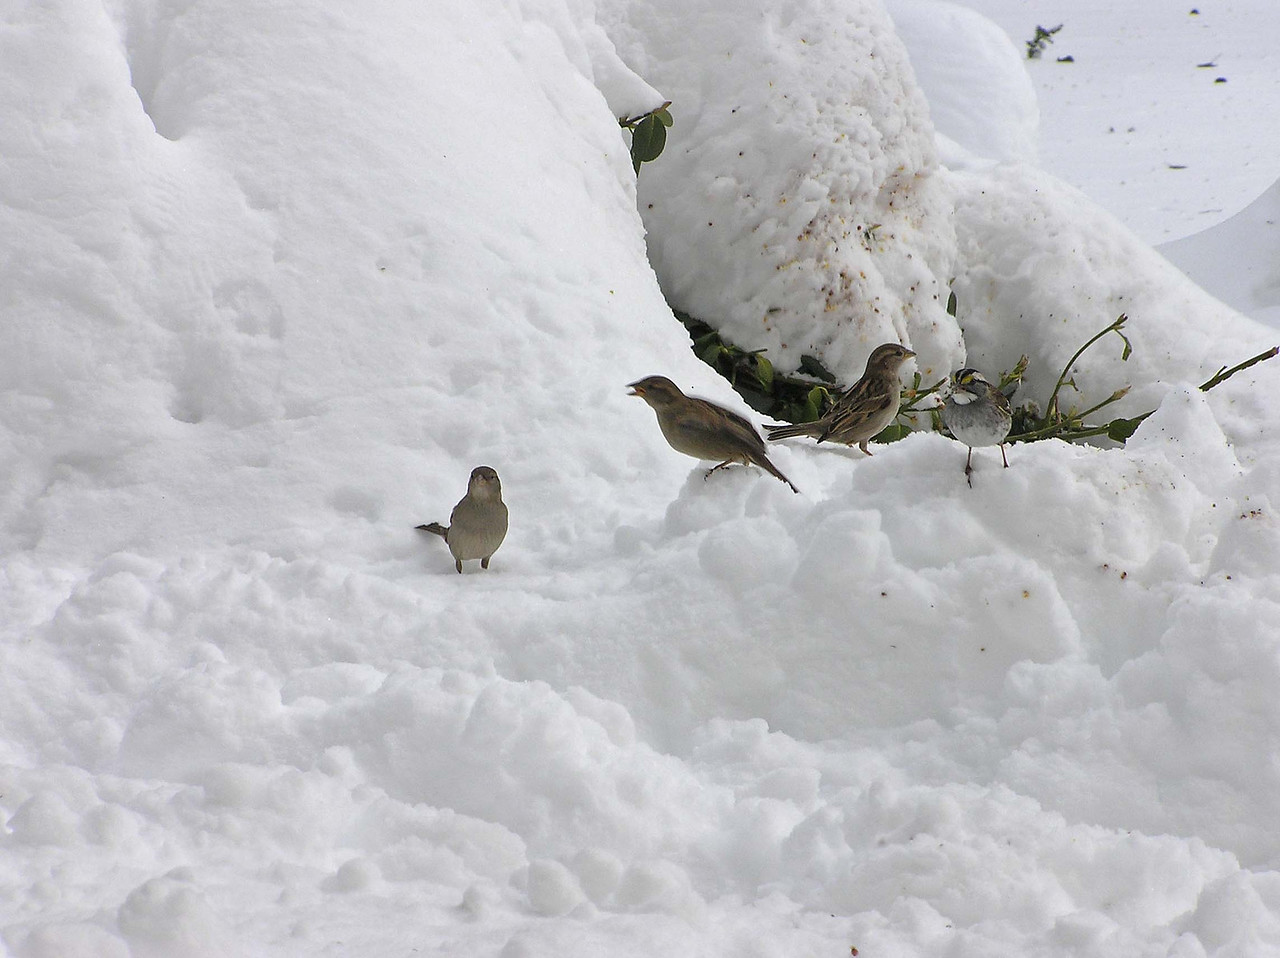 That one sparrow is saying  WTF #*+#%.